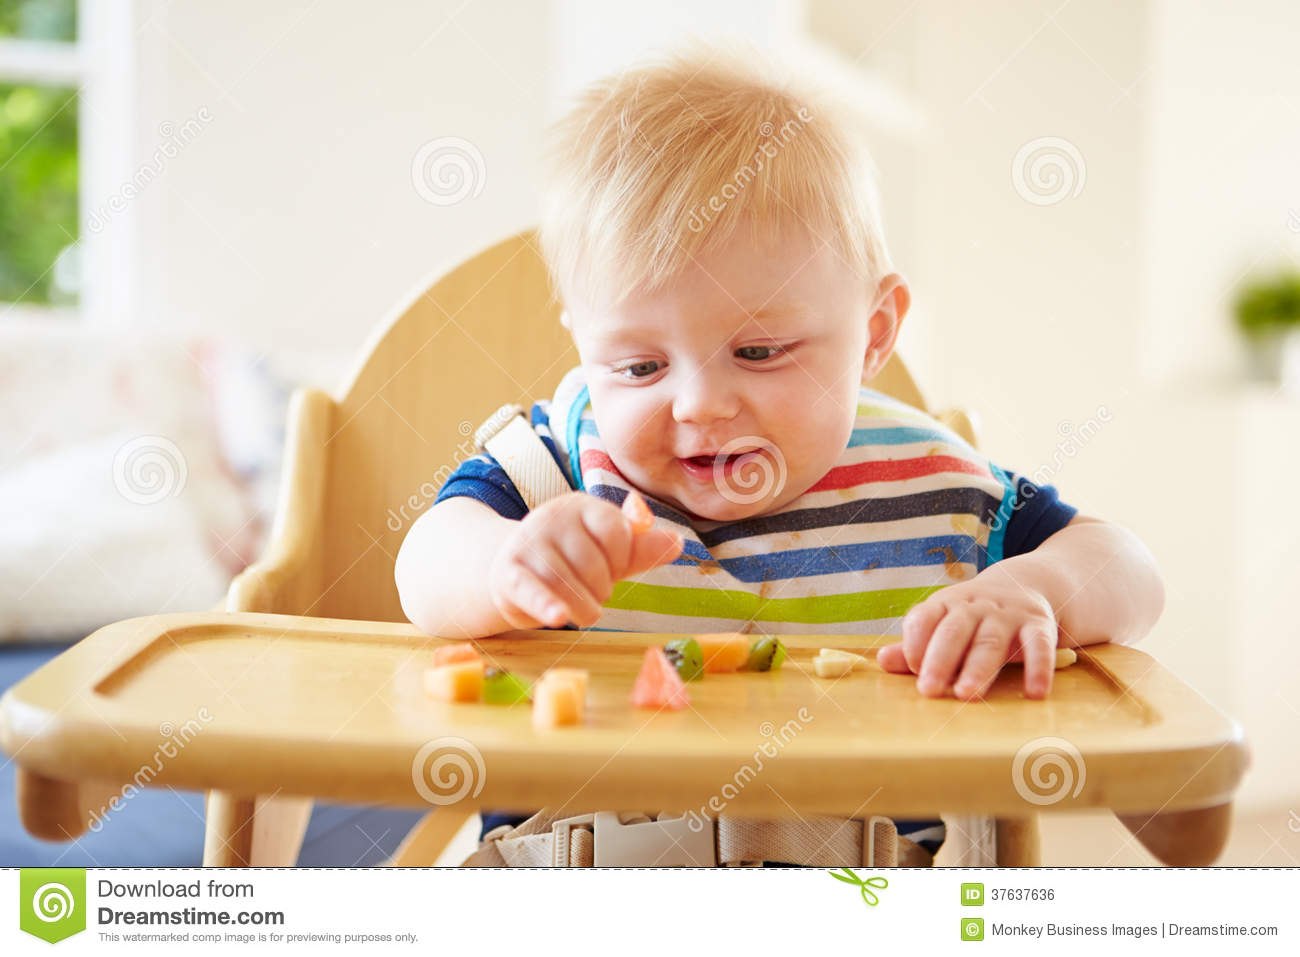 Baby Chair For Eating Baby Boy Eating Fruit In High Chair Royalty Free Stock